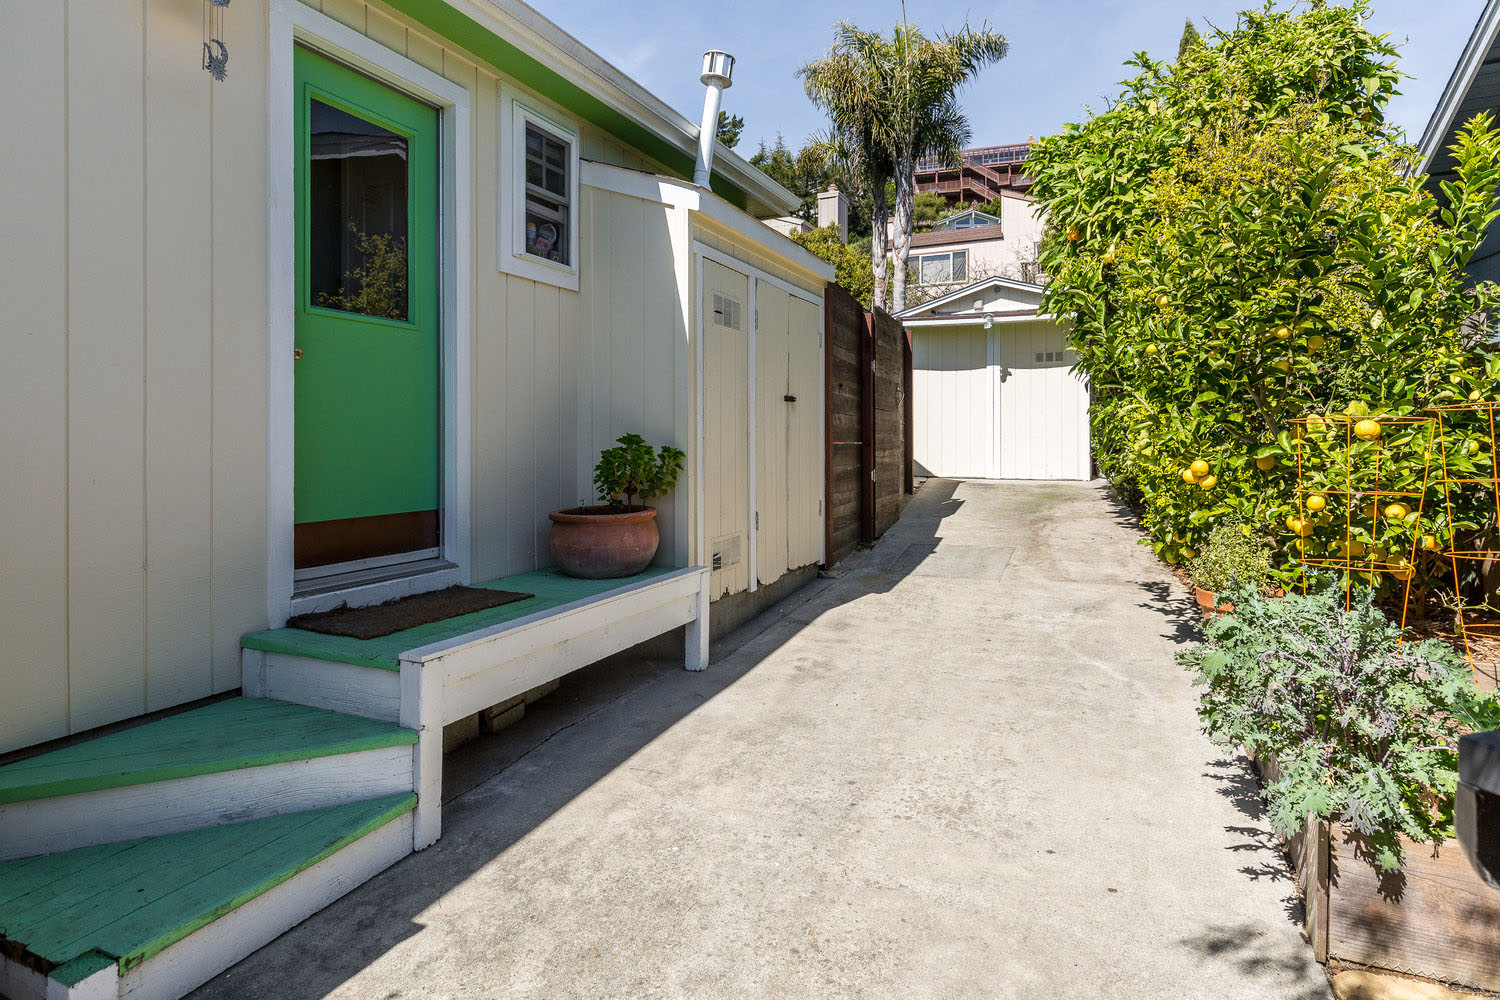 Well maintained lower westside 2 bedroom, 1 bathroom bungalowclose to Highway 1, Swift Street Courtyard, Natural Bridges, Wilder Ranch, and West Cliff.  Listed by Sam Bird-Robinson, Santa Cruz Realtor, of Sereno Group.